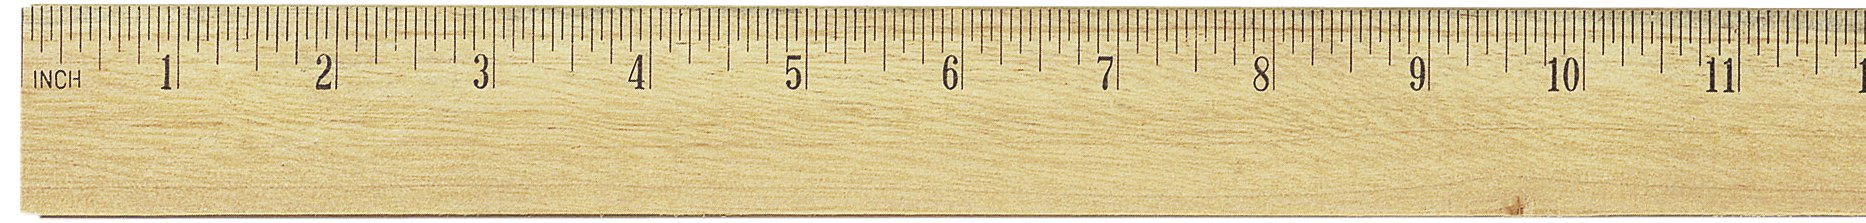 Officemate OIC Classic Wood Ruler with Double Metal Edge, 24-Inch (66003)